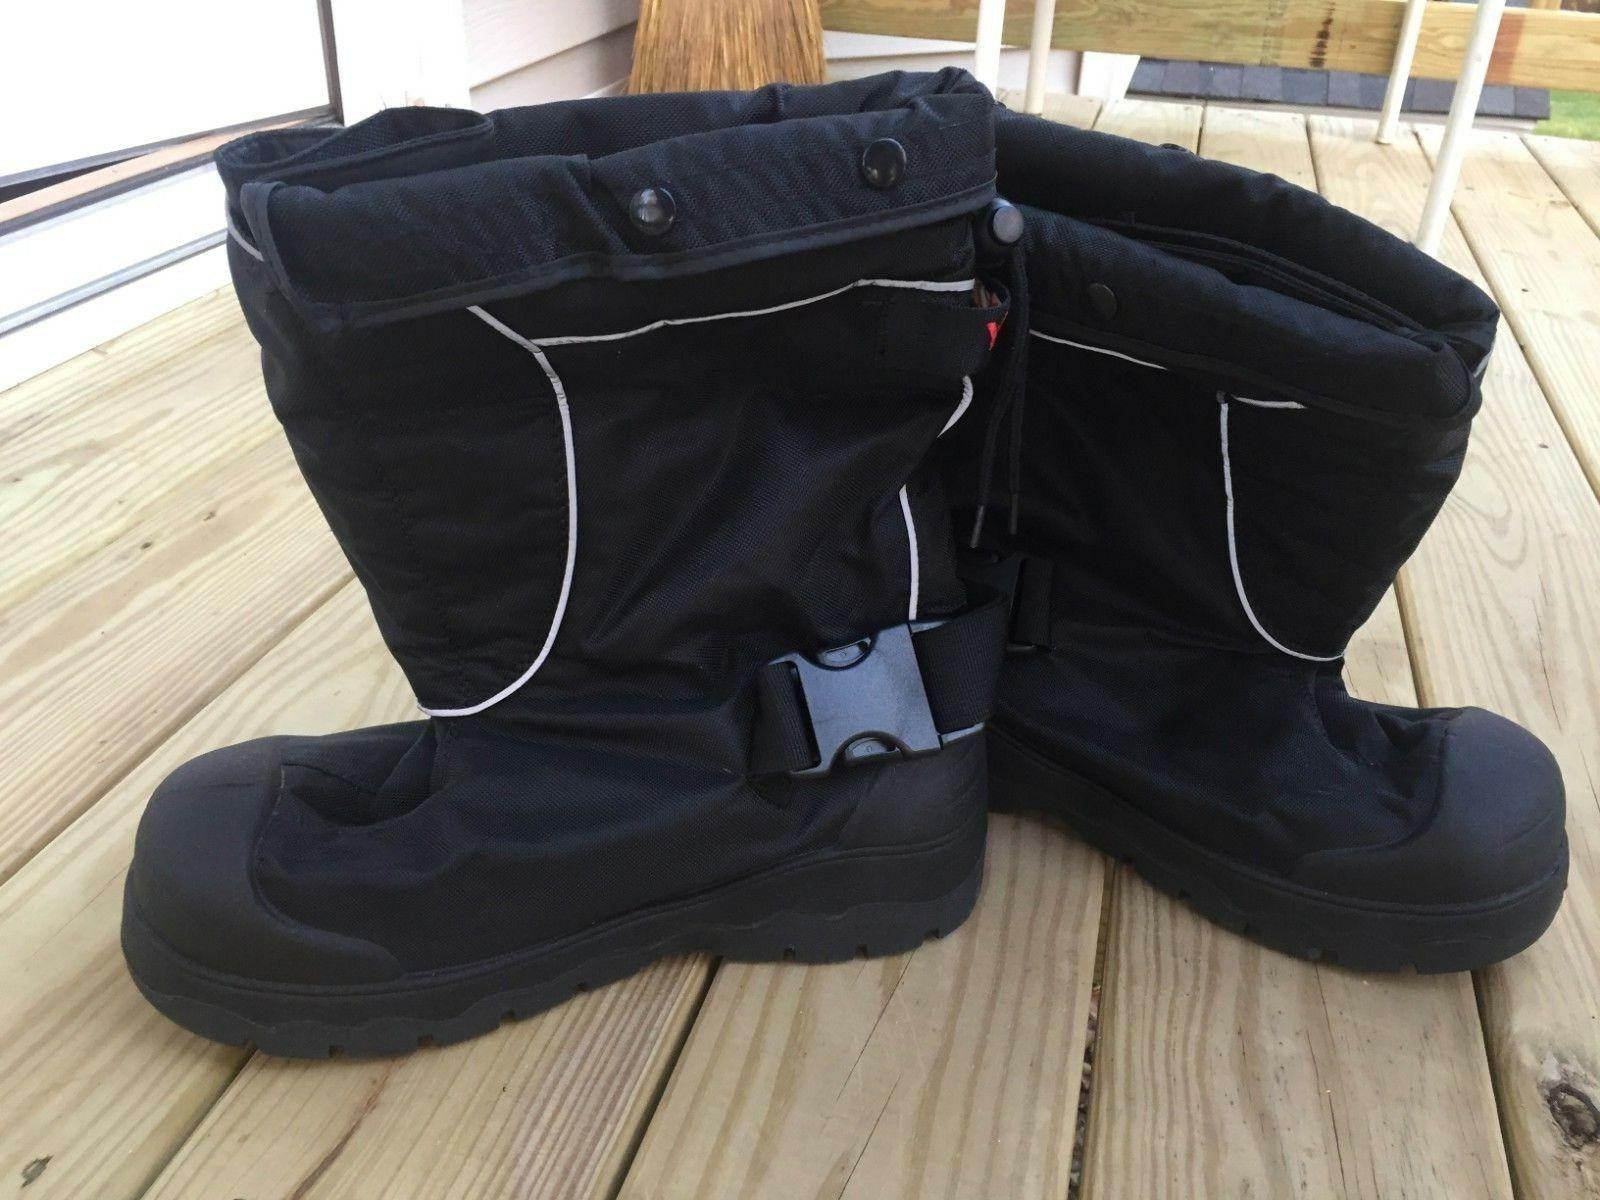 Orion Boots-Insulated Women Men 7-1/2 TINGLEY 7500G